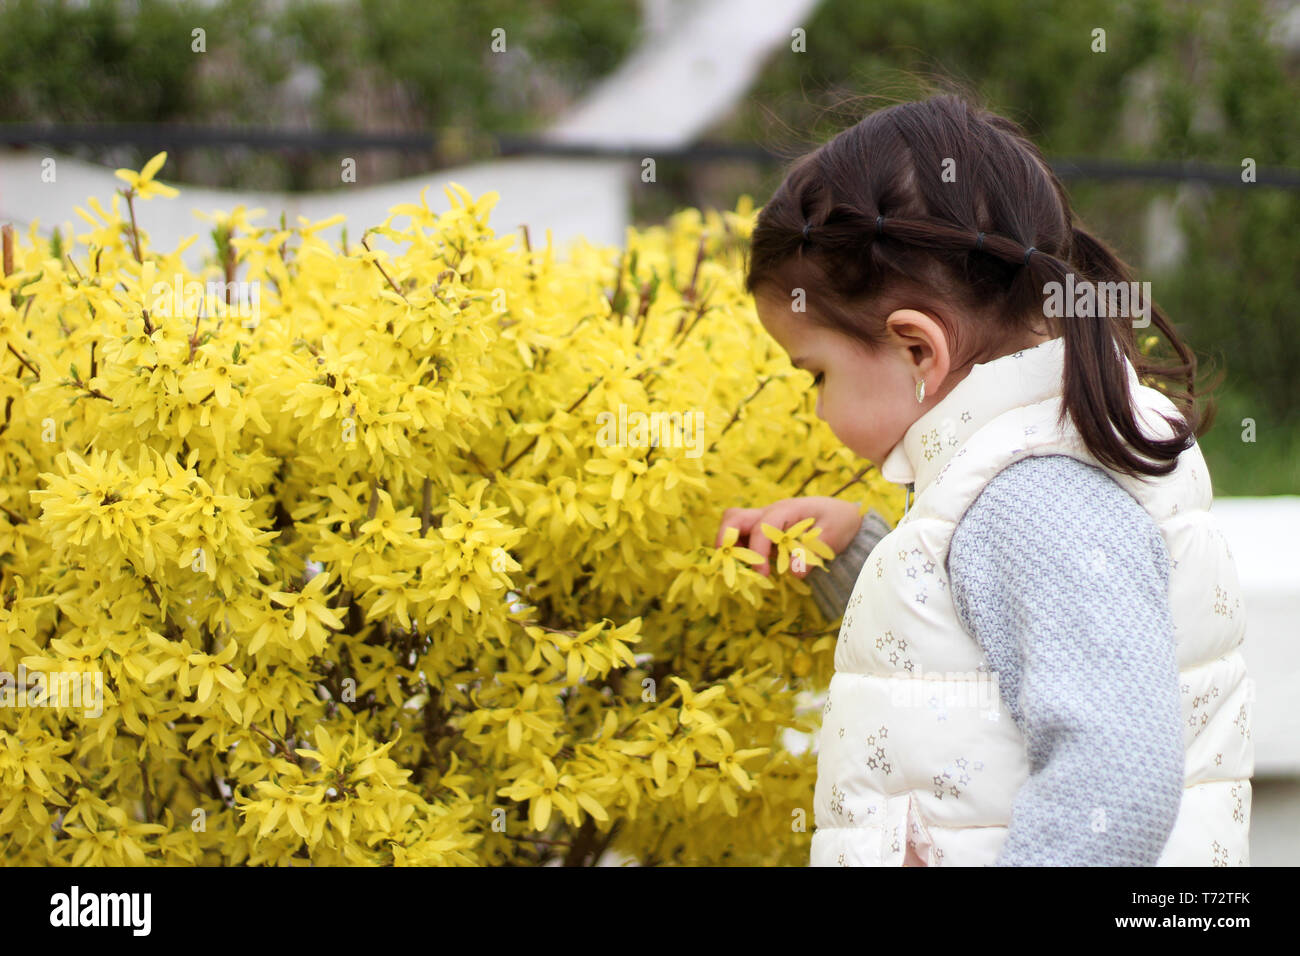 resentful little girl with ponytails looks at a bush with yellow flowers - Stock Image